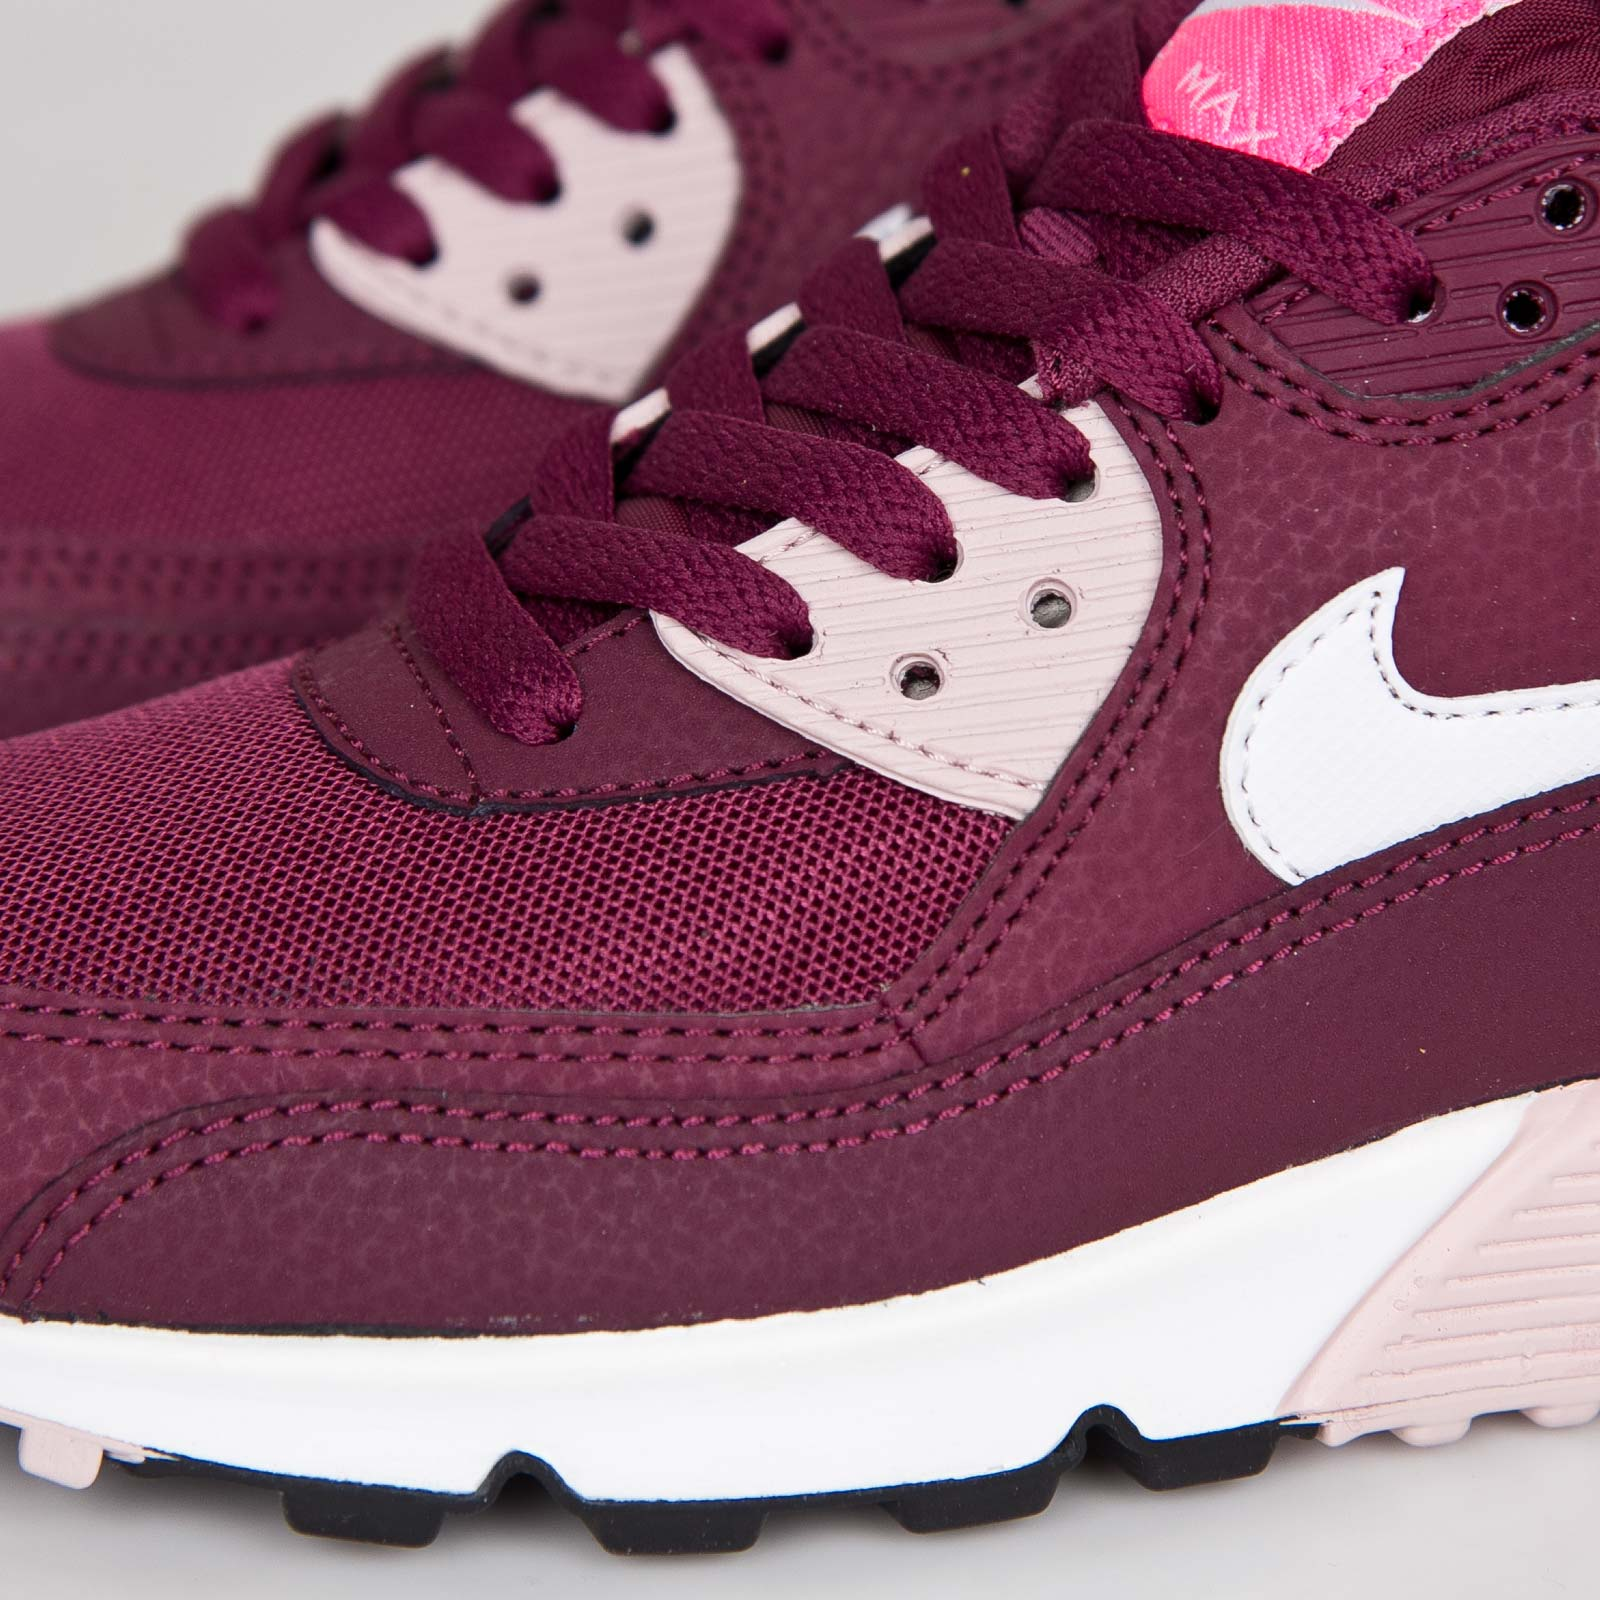 Nike Wmns Air Max 90 Essential Villain Red Pink Pow